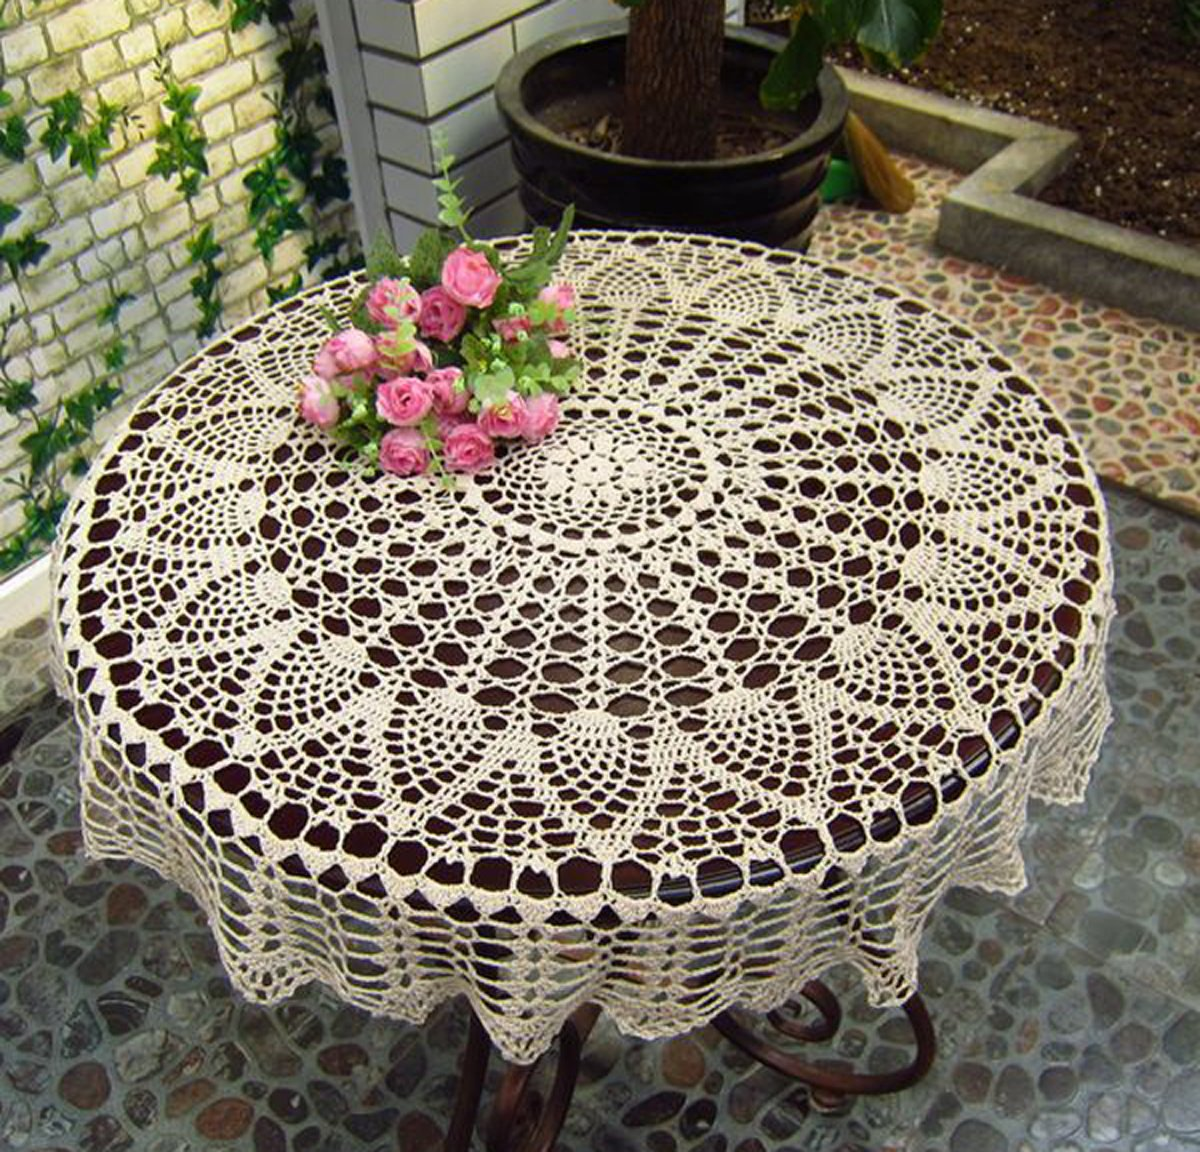 Exceptional Handmade Round Crochet Sunflower Lace Tablecloth